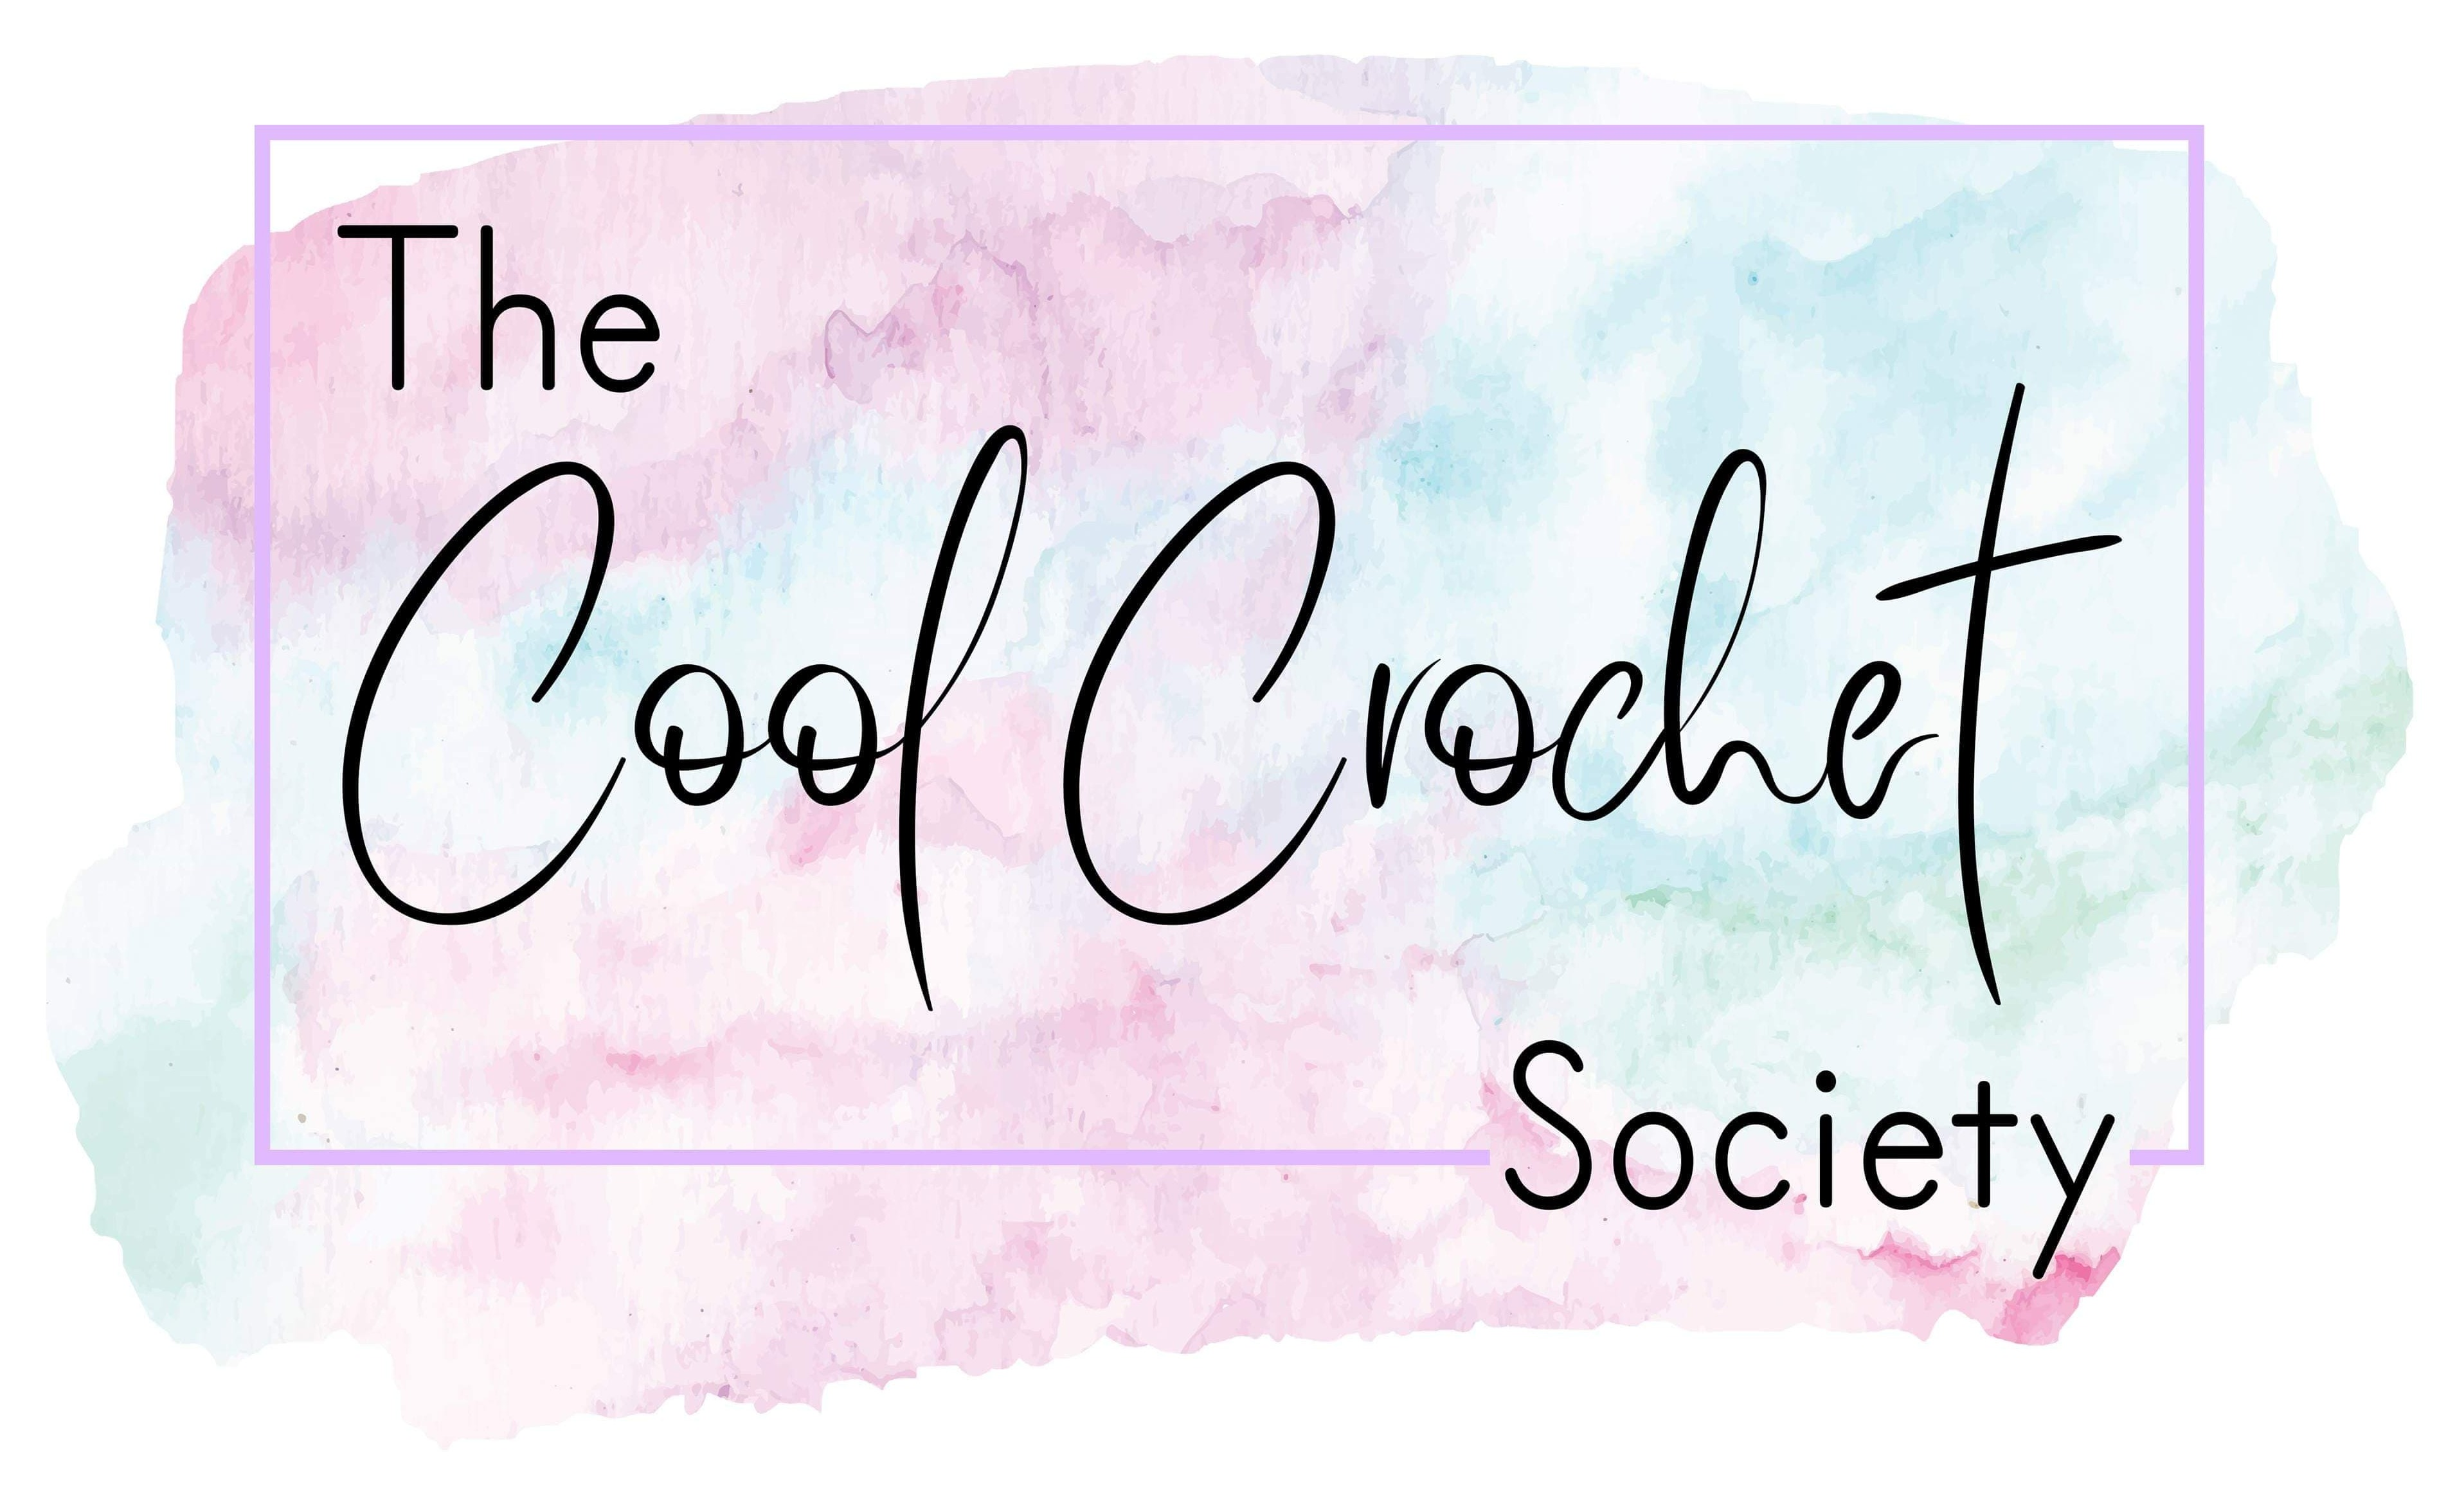 The Cool Crochet Society